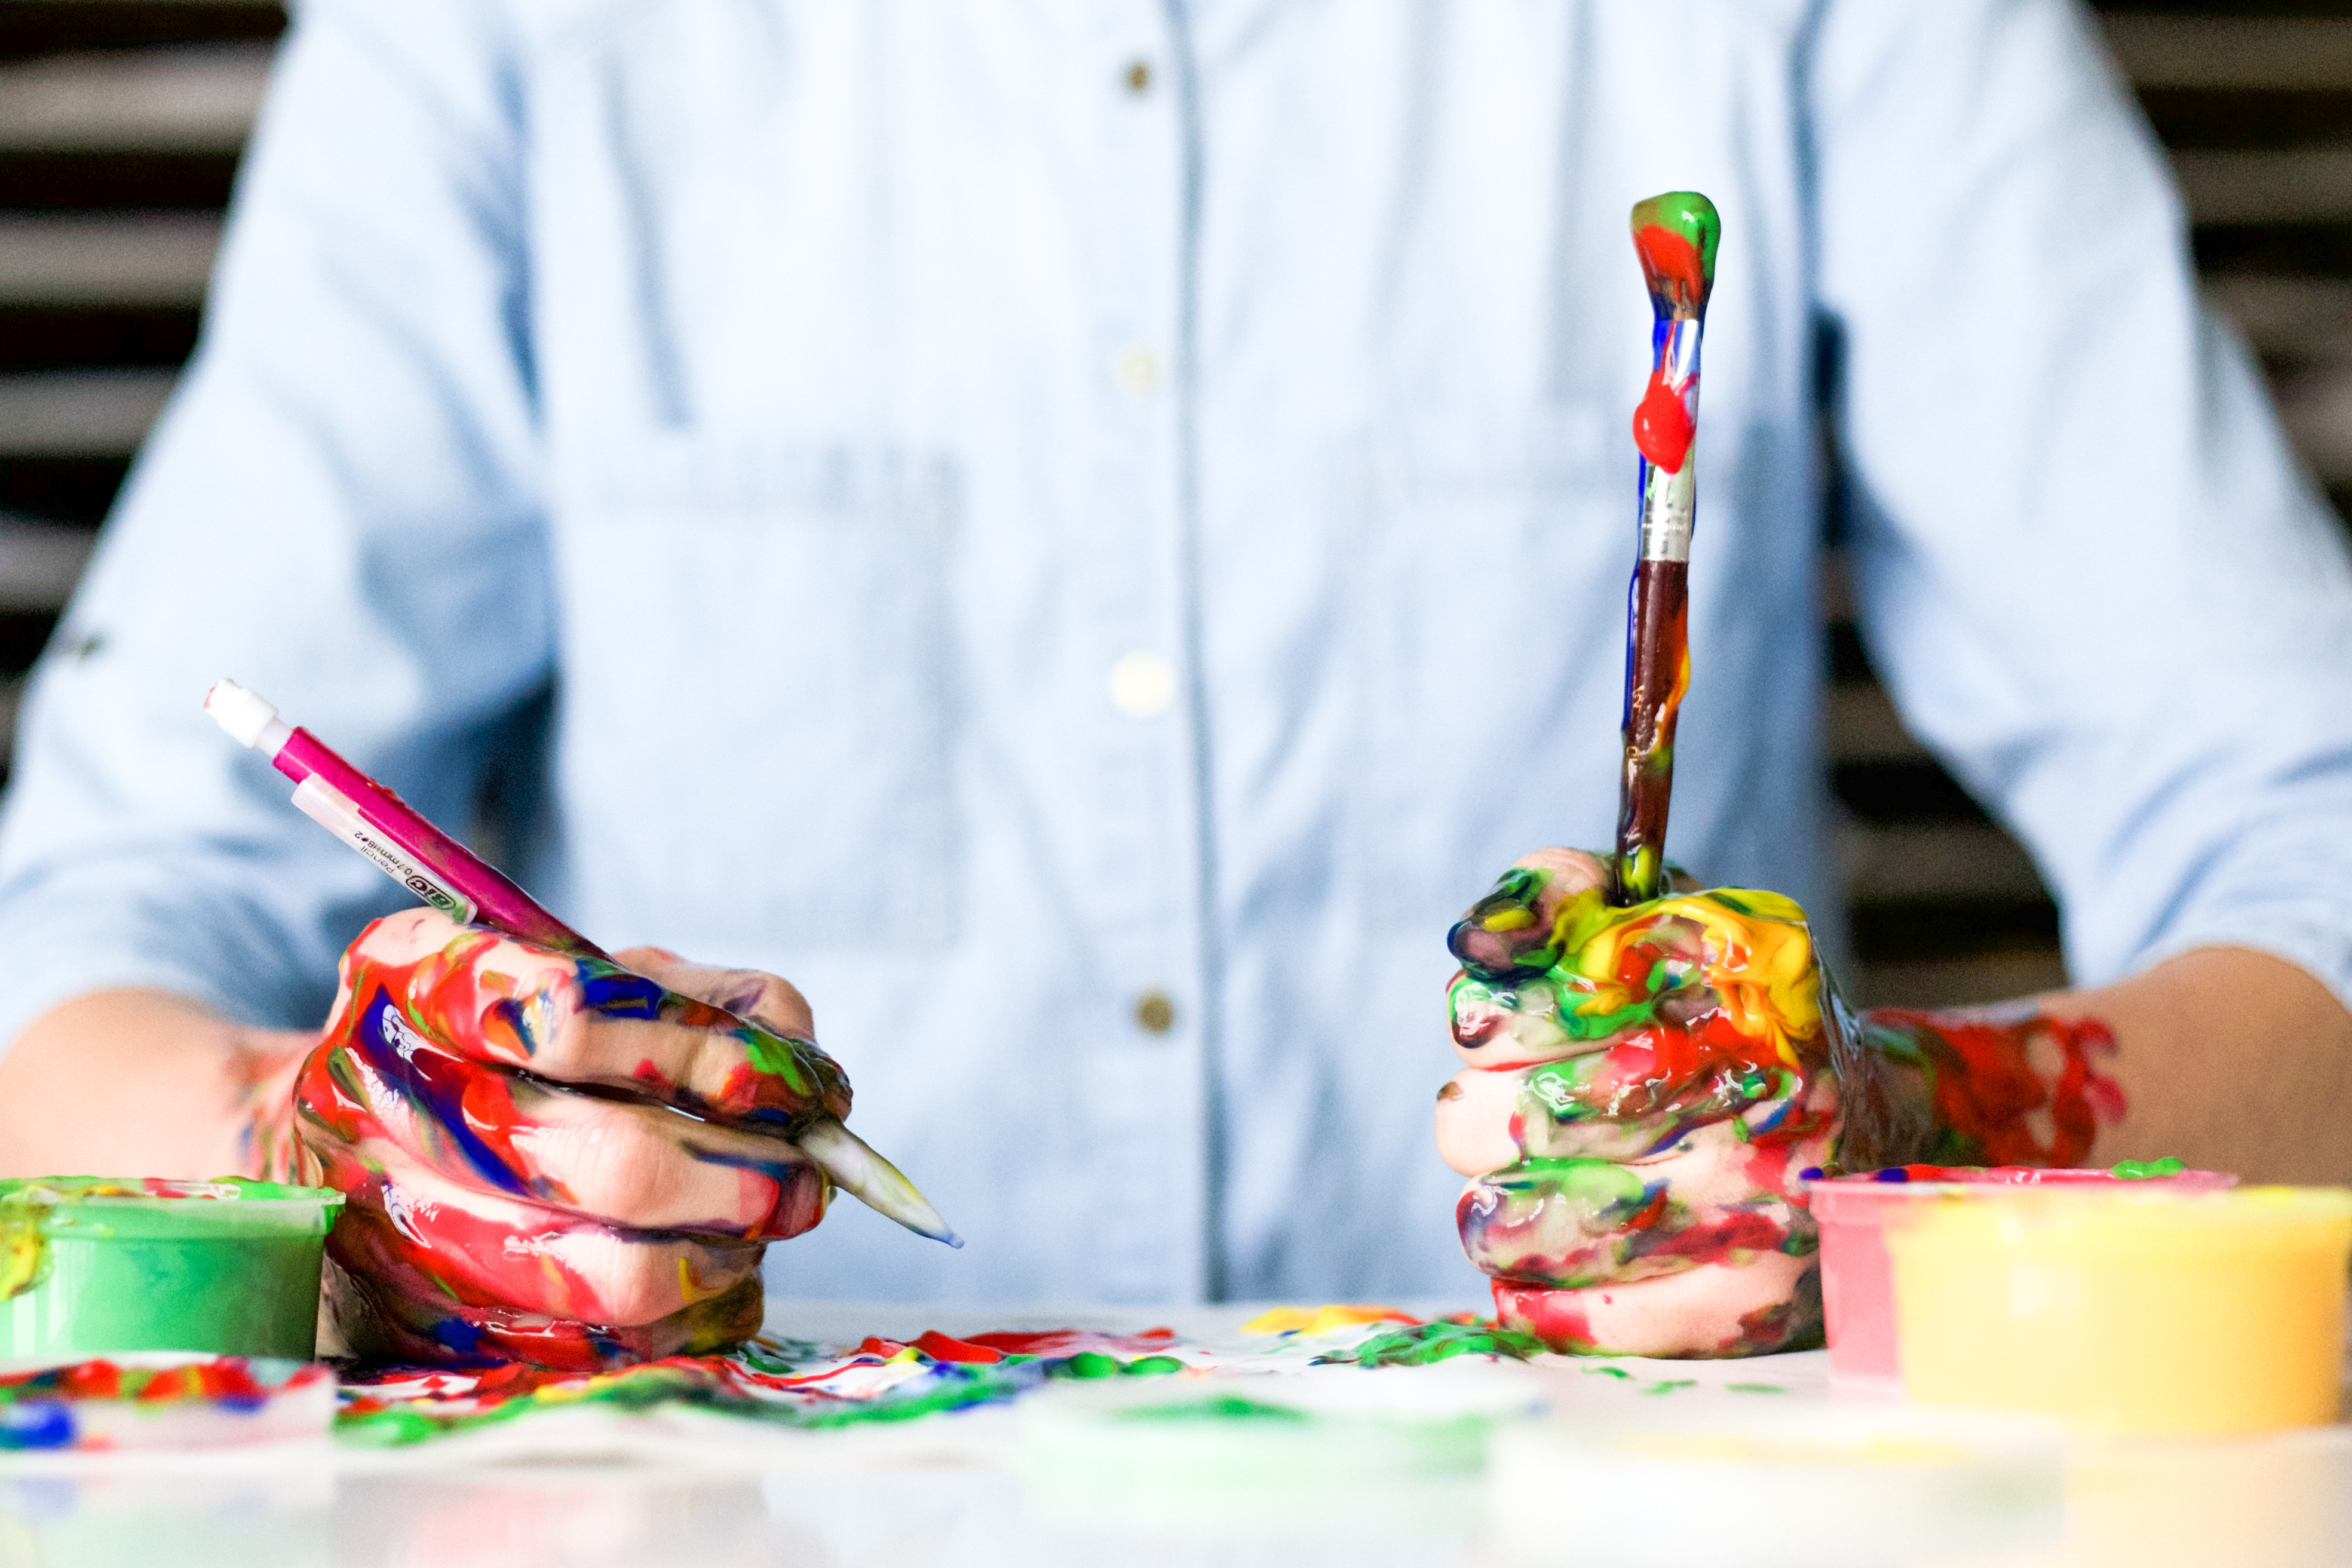 Create art more often. Whatever kind of medium is your favorite, do it! And yes, crafts are a type of art.